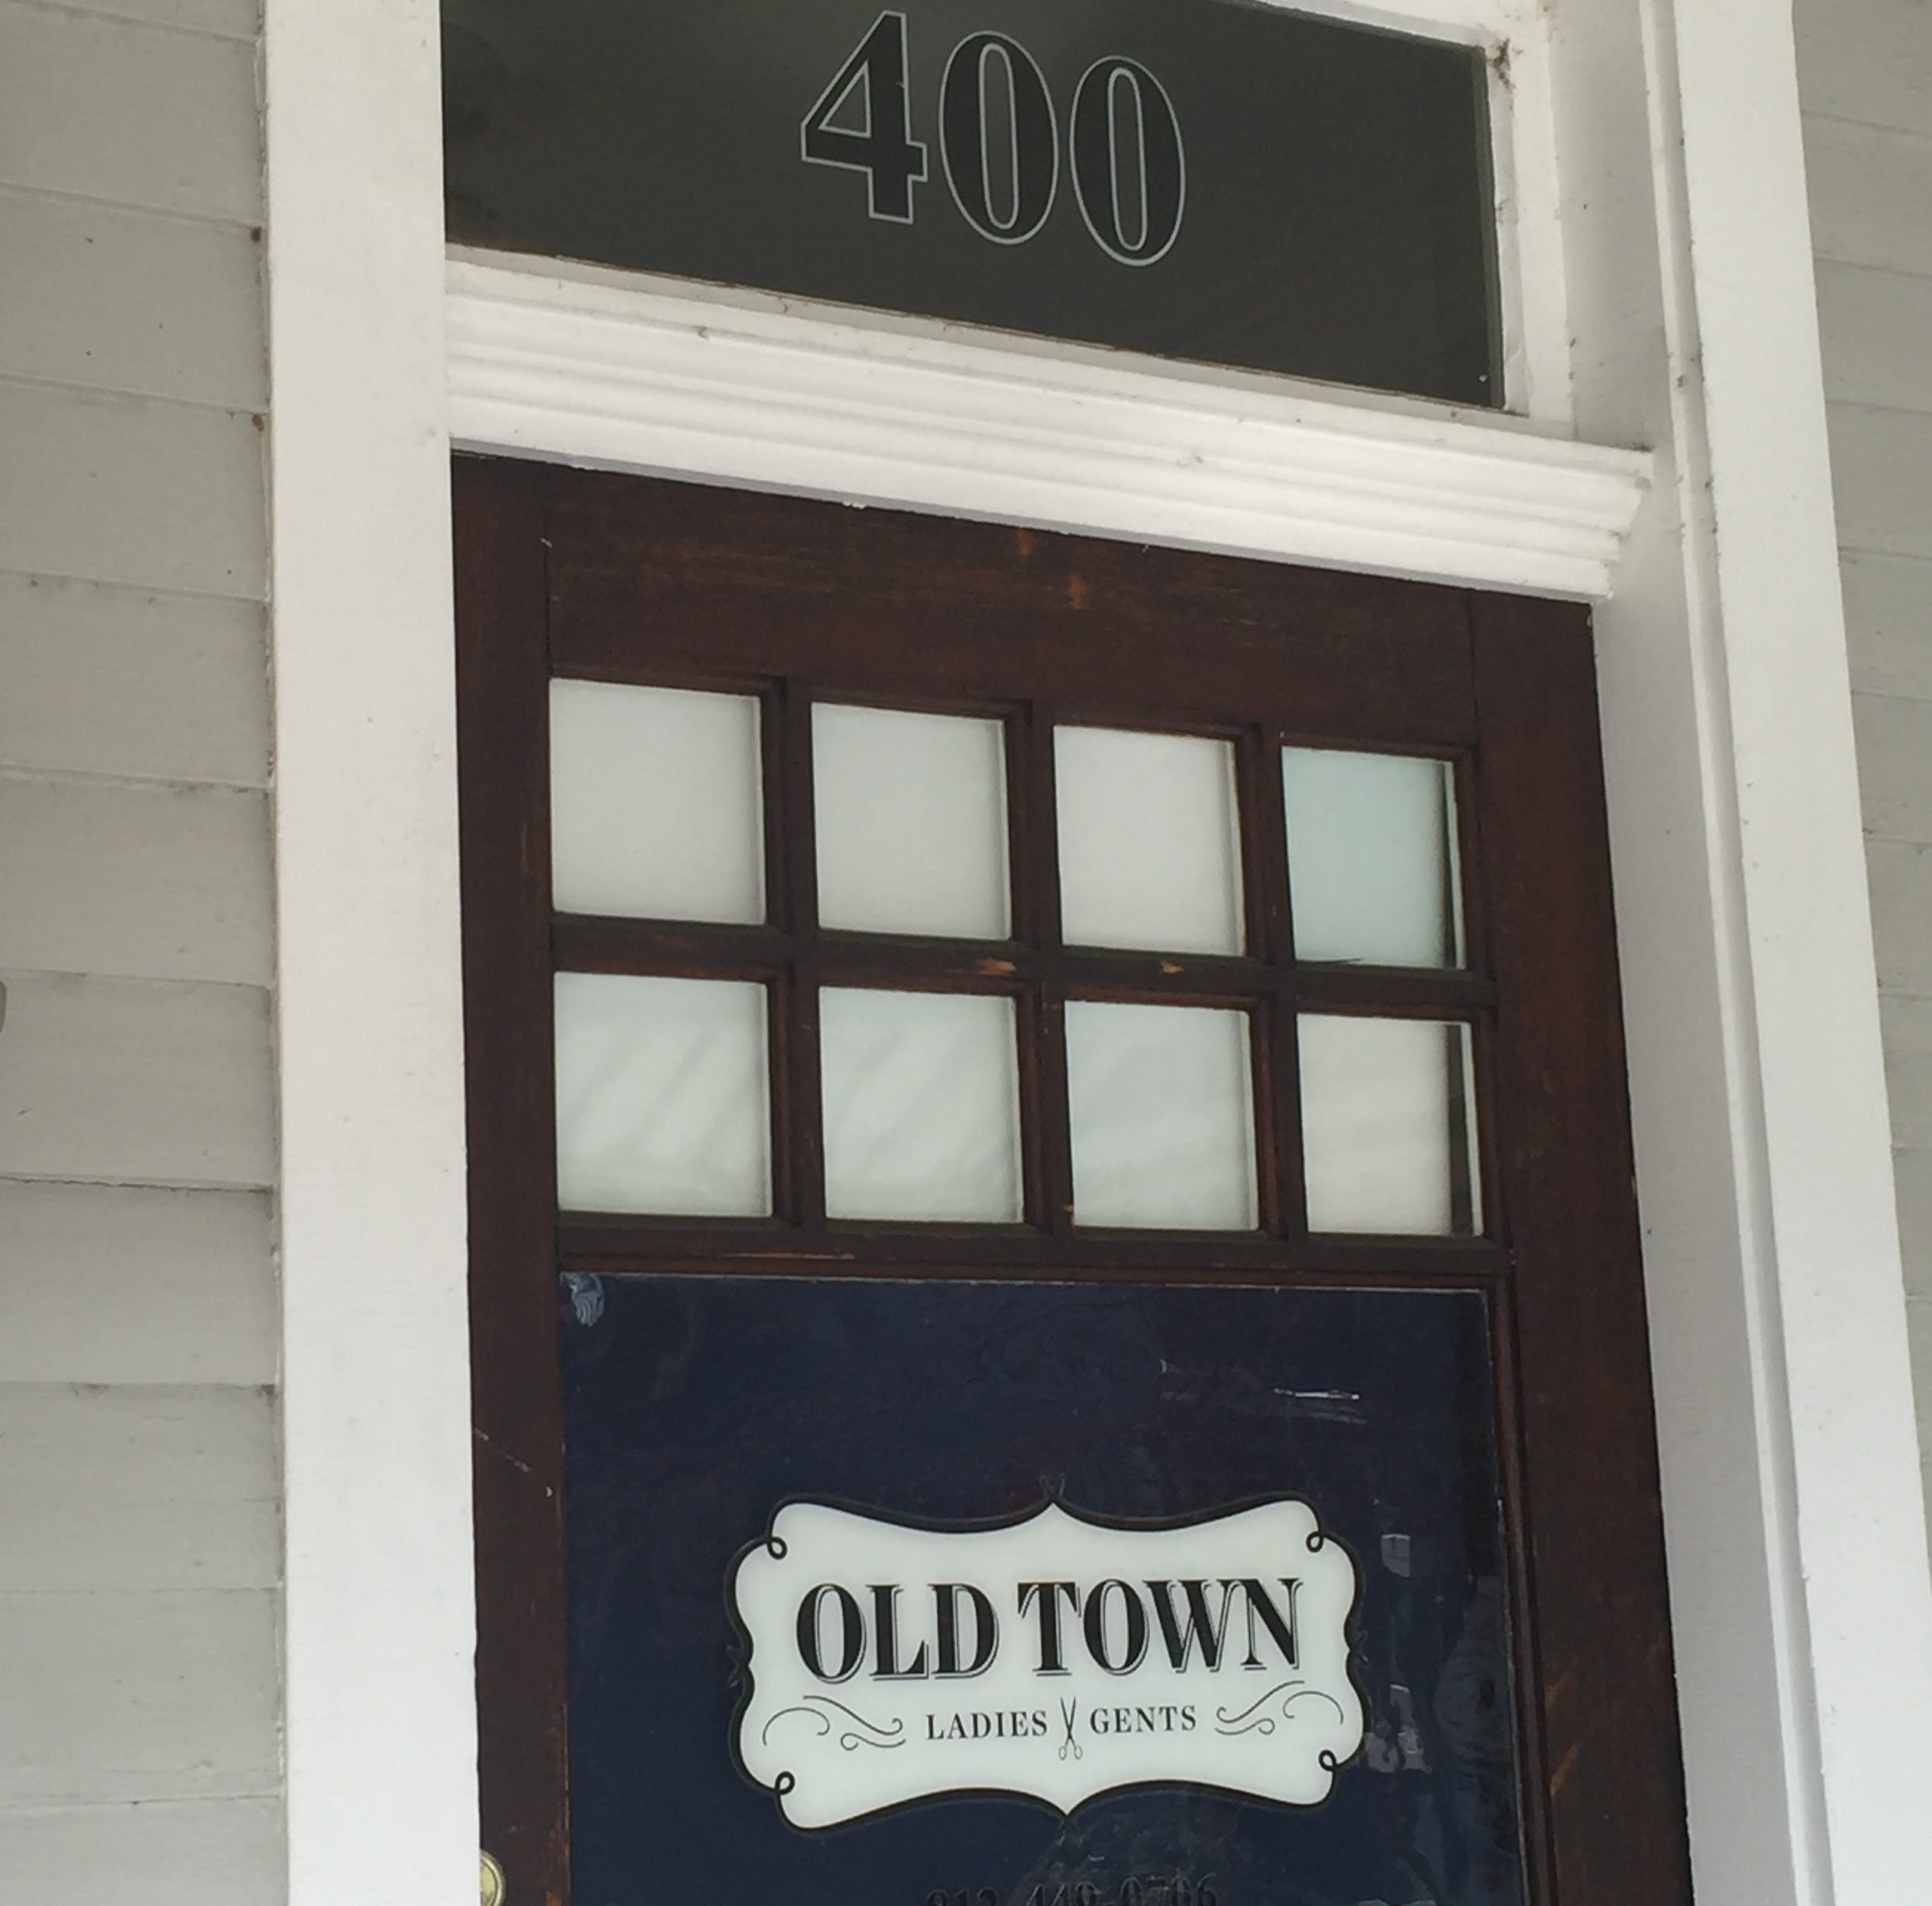 Old Town, barbershop near Downtown Evansville, to close but reopen with new owner